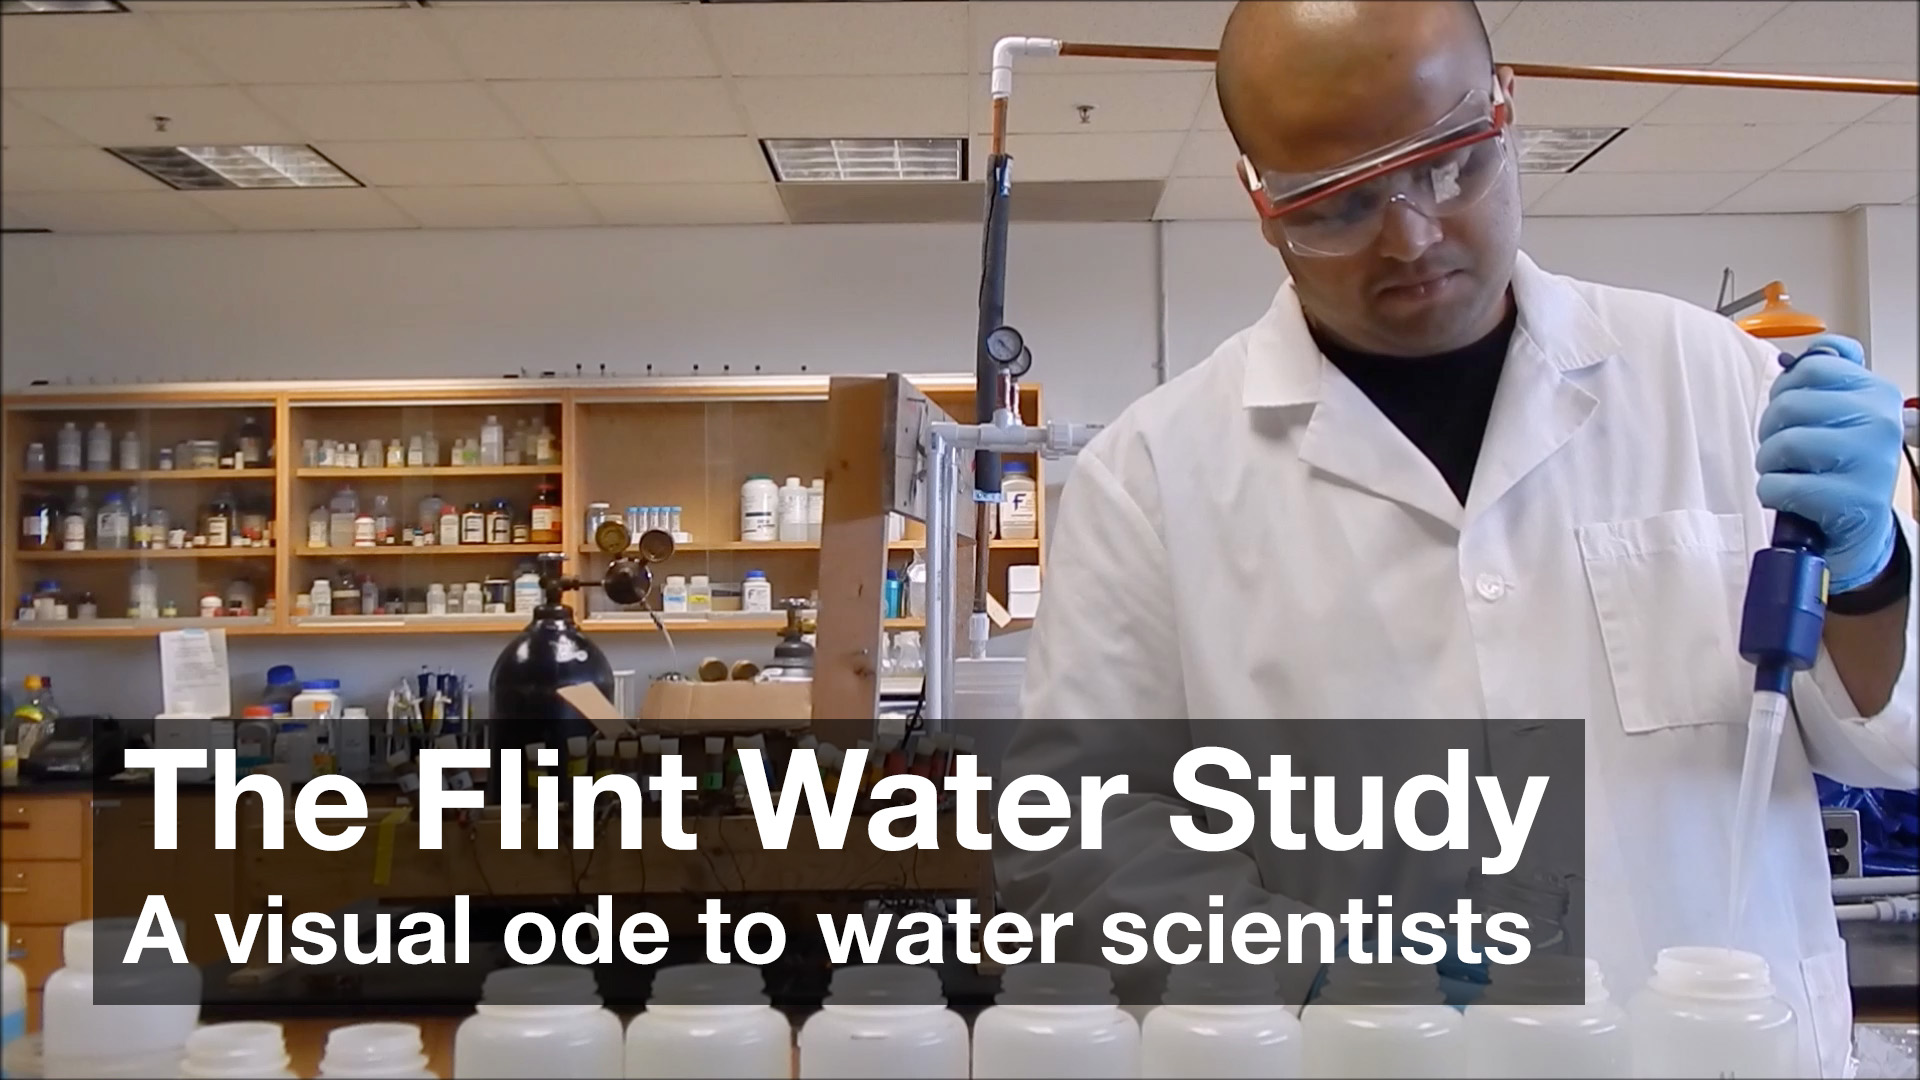 The Flint Water Study: A visual ode to water scientists